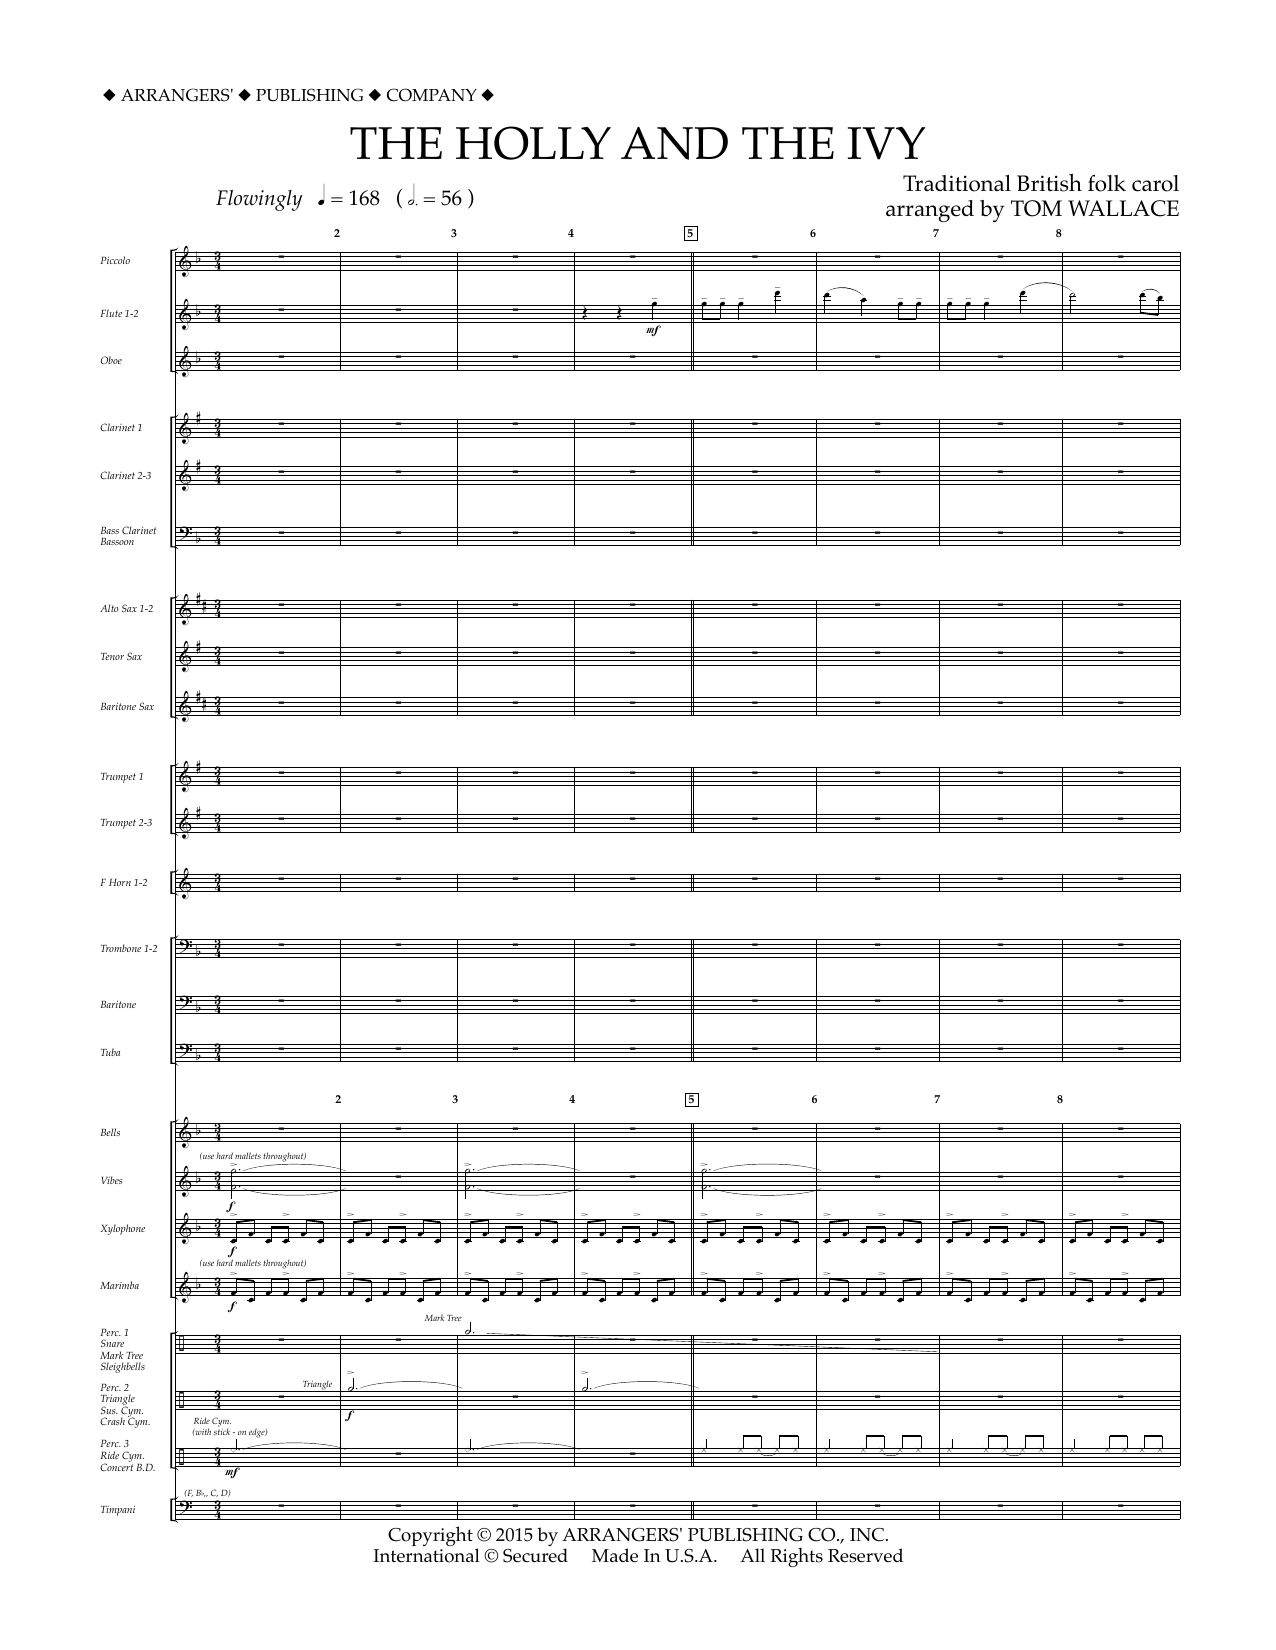 Tom Wallace The Holly and the Ivy - Conductor Score (Full Score) sheet music notes and chords